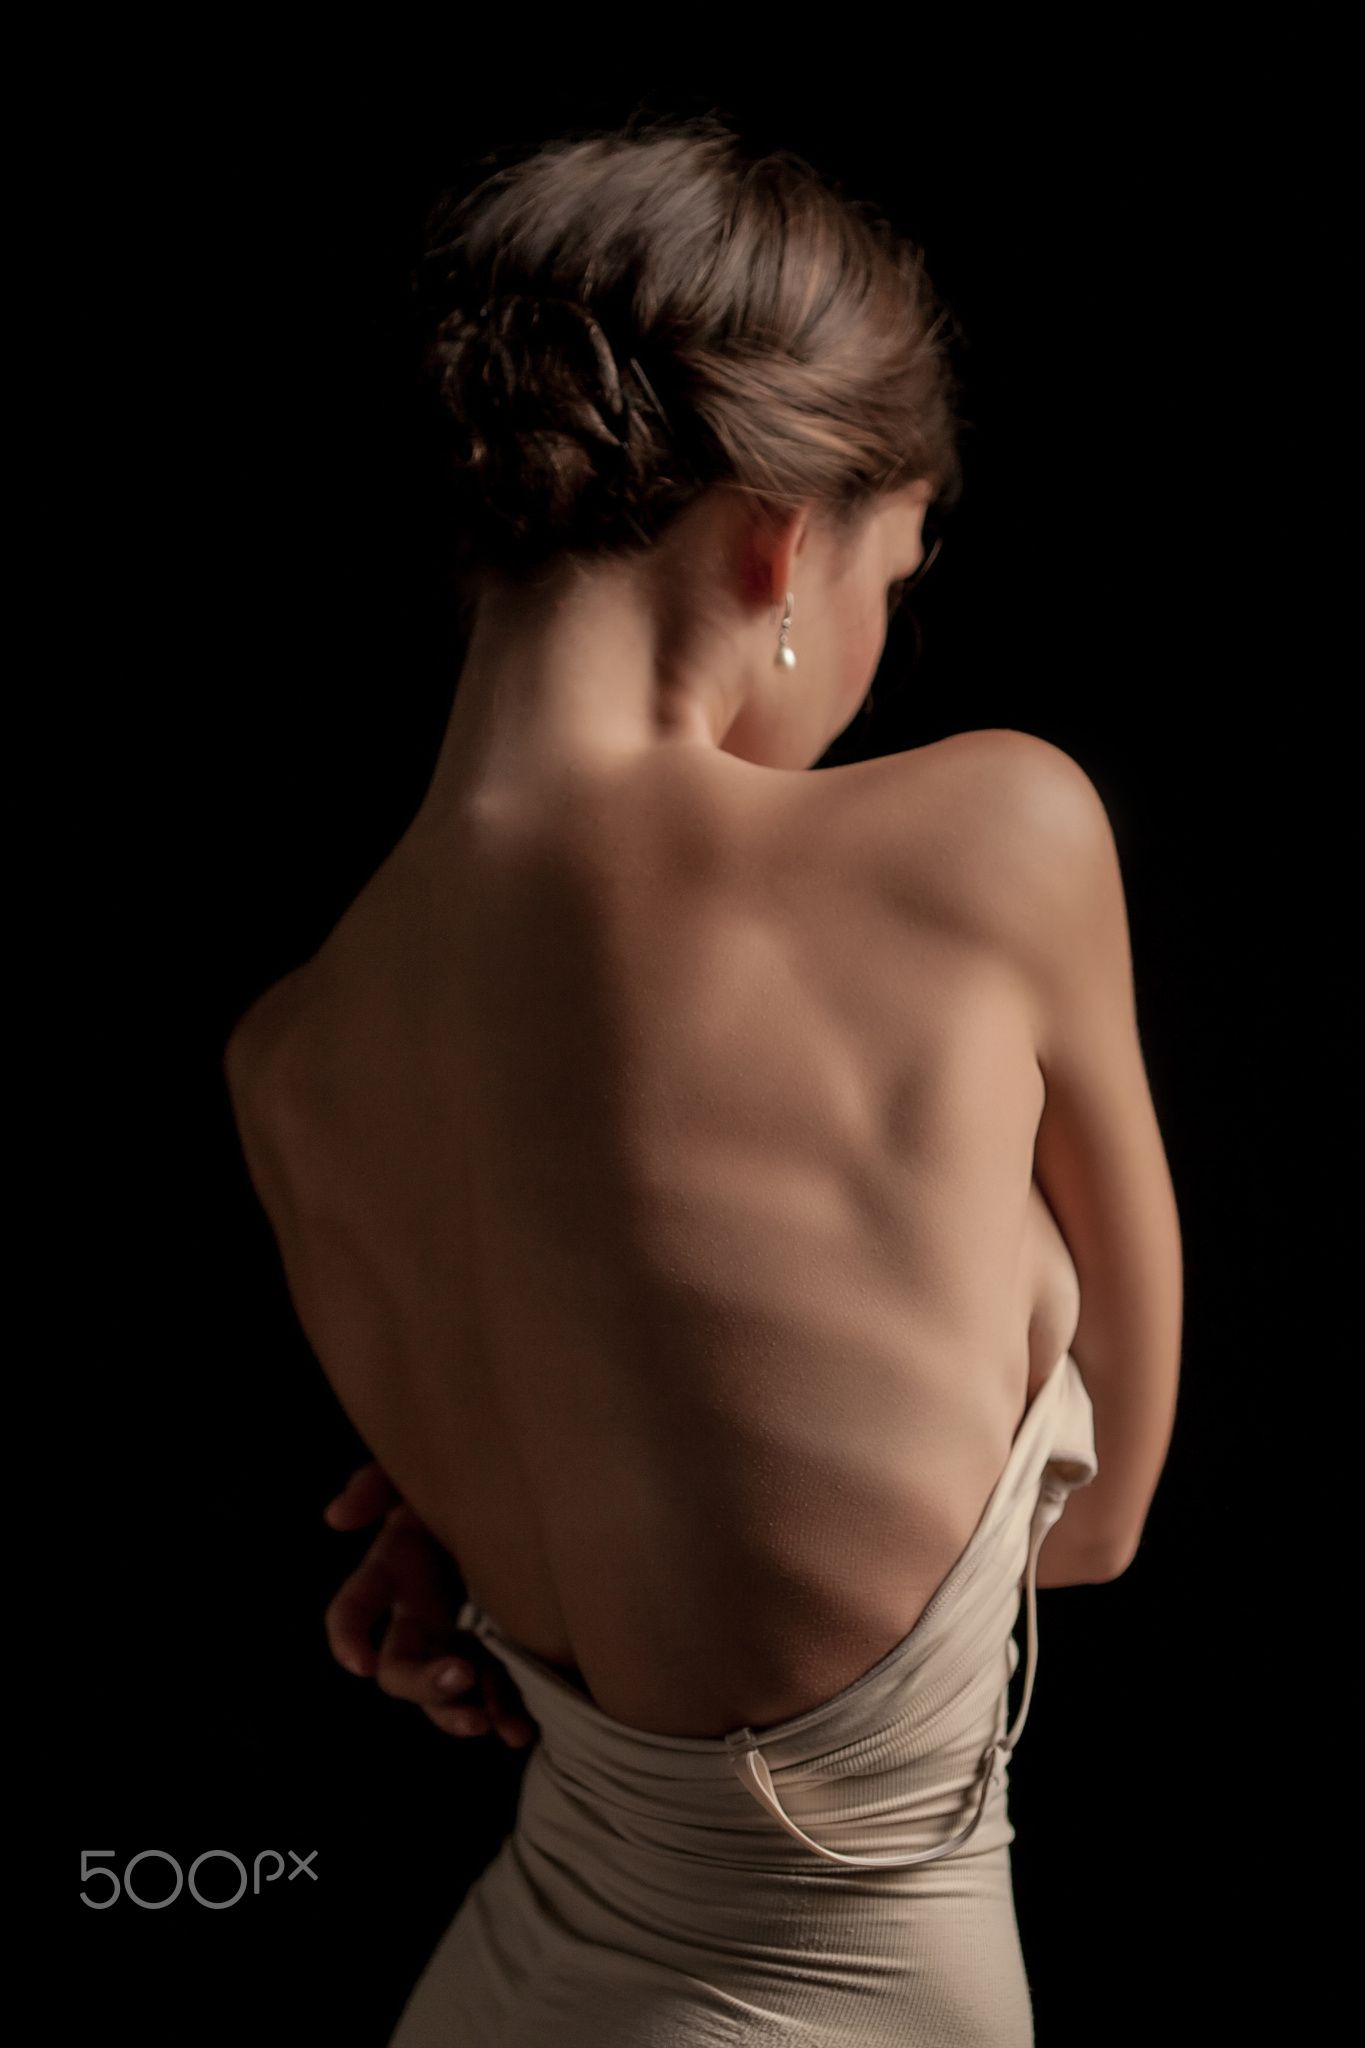 Woman on back